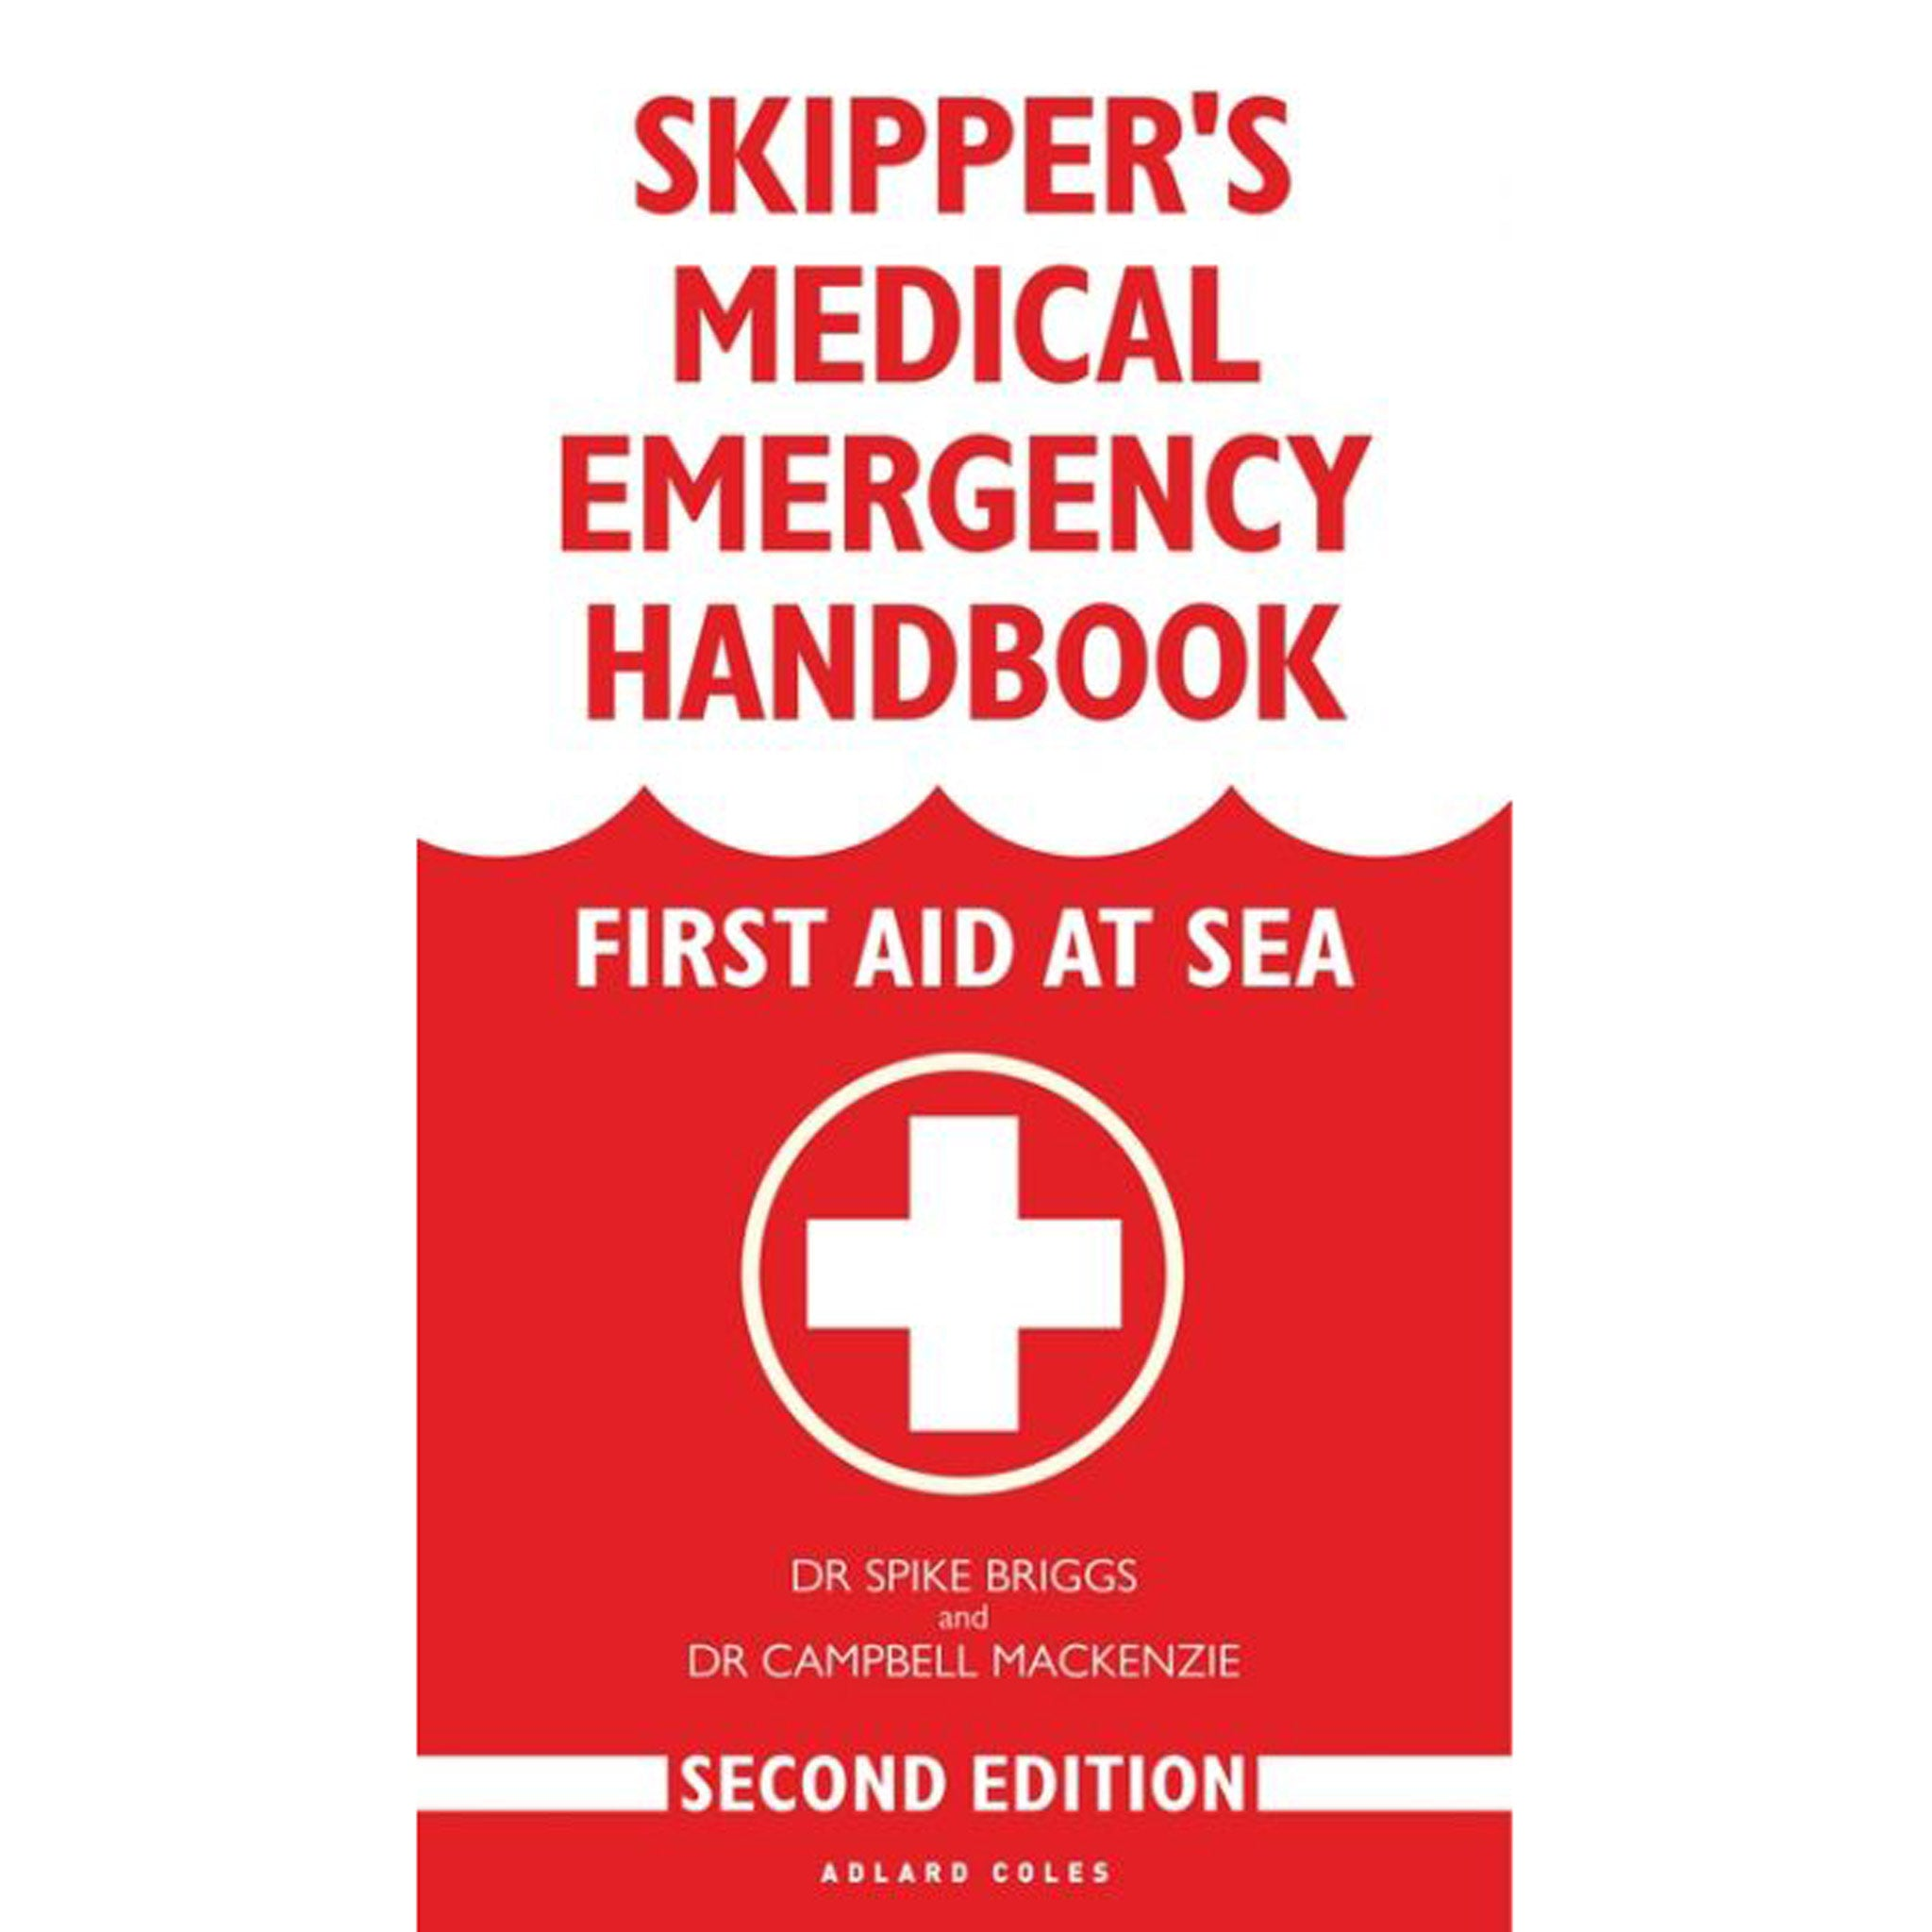 Skipper's Medical Emergency Handbook